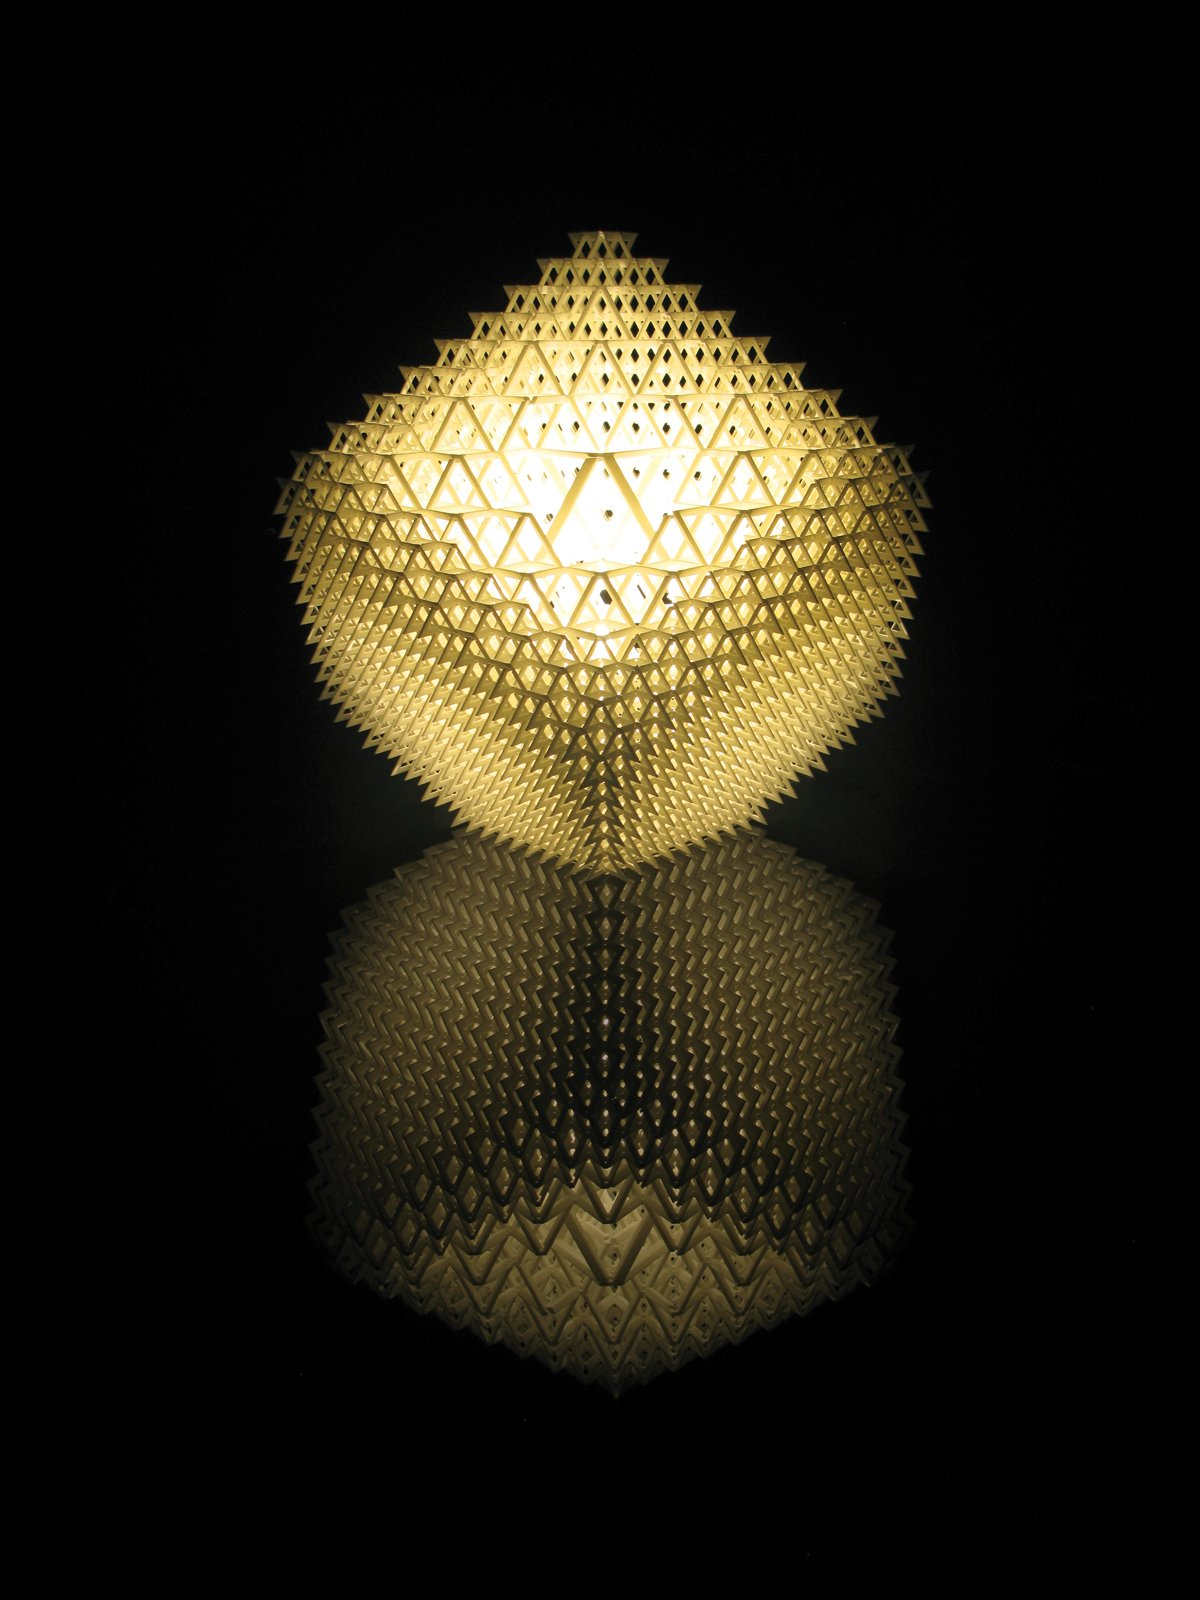 """Shine a Light  Benshetrit's table lamp, for the lighting and furniture company .MGX by Materialise uses QuaDror's infinitely scalable geometry to create a honeycomb of 1,200 modules that fits over a metal base holding a 40-watt halogen bulb. The lamp, which arrives   flat and expands, accordion-like, when lifted, is manufactured via selective laser sintering (SLS), a 3-D printing process that uses a laser to solidify layer upon layer   of powdered resin particles. """"When you   buy the lamp, you get a disc with the file   on it, so if it breaks, you can 'reprint' it,"""" Benshetrit says.  Search """"f k a table lamp"""" from Top Dror"""